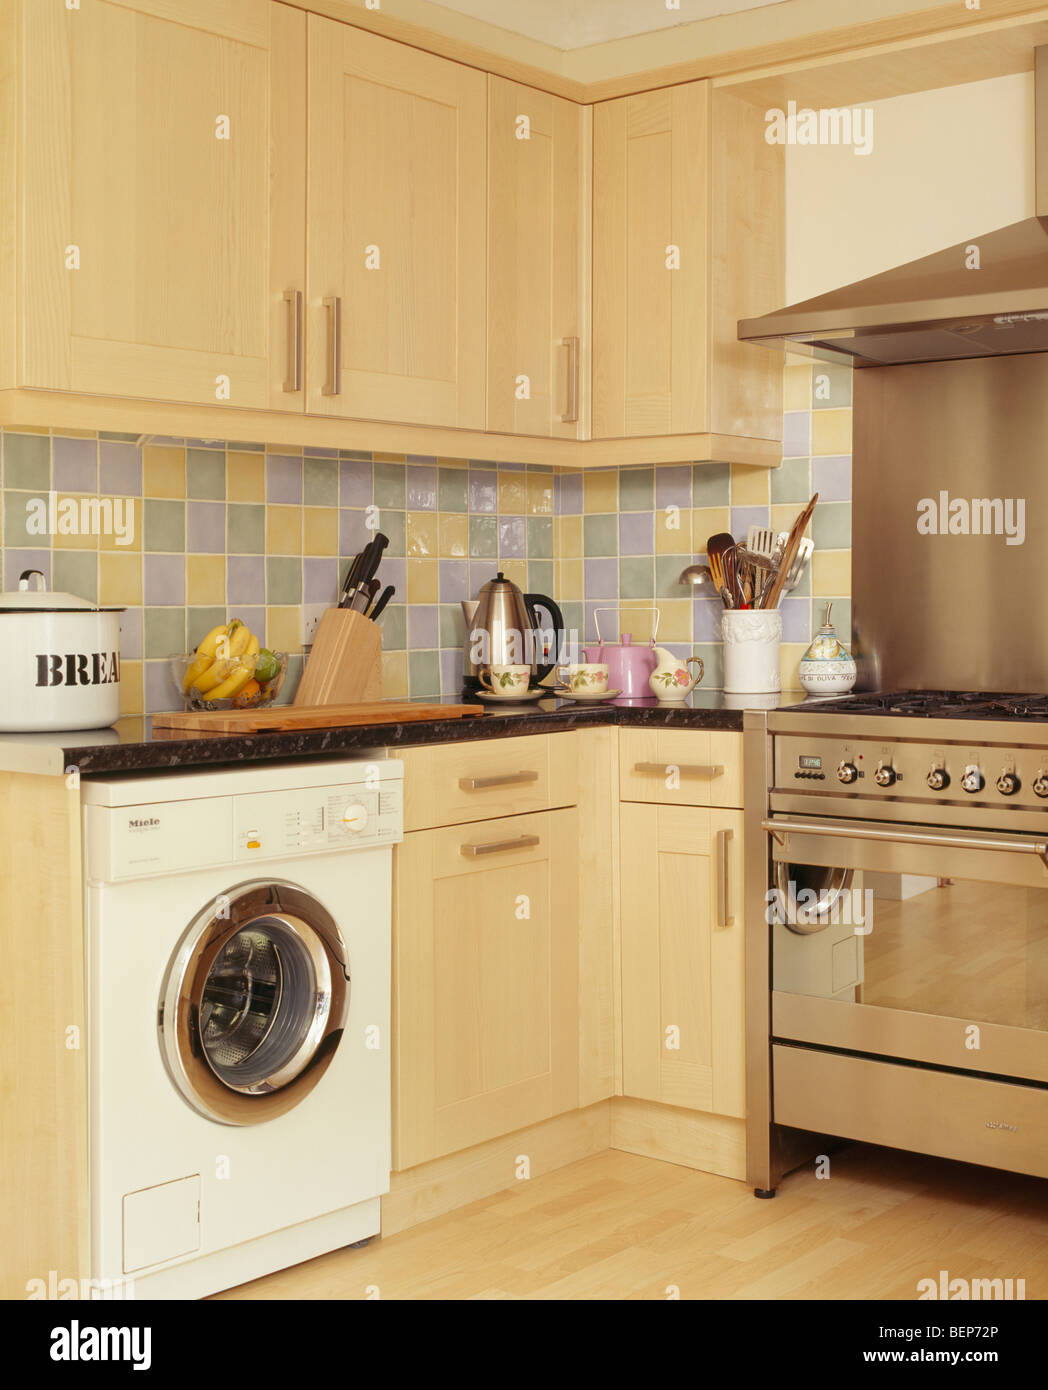 Kitchen Washing Machine ~ Washing machine and stainless steel range oven in modern